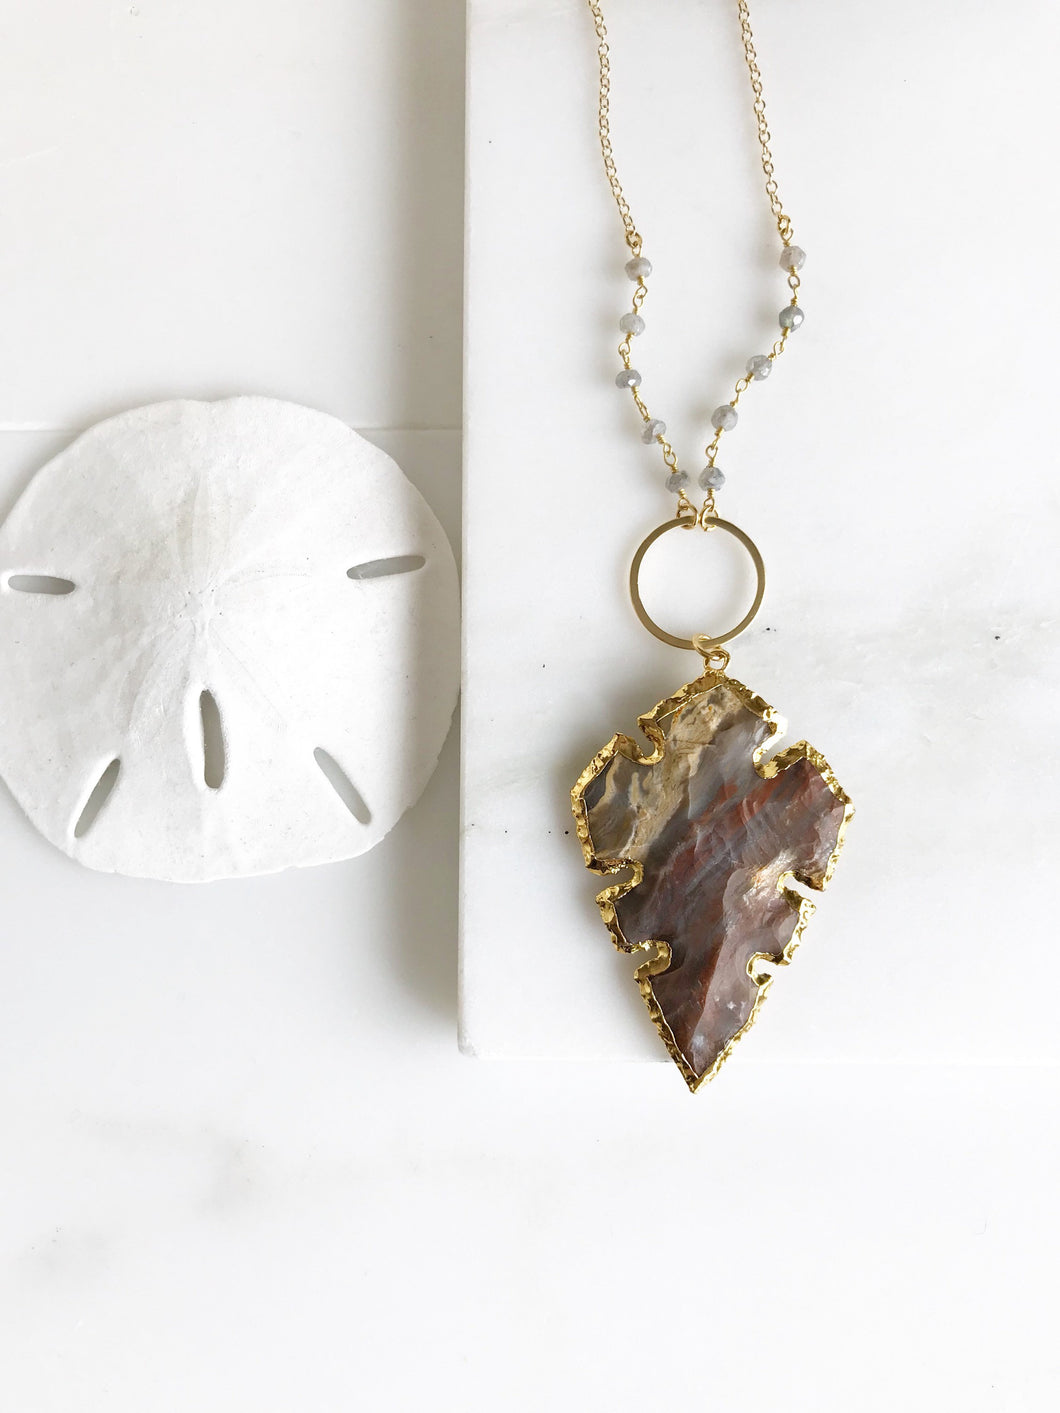 Arrowhead Pendant Necklace. Long Gold Circle and Brown Arrowhead Necklace.